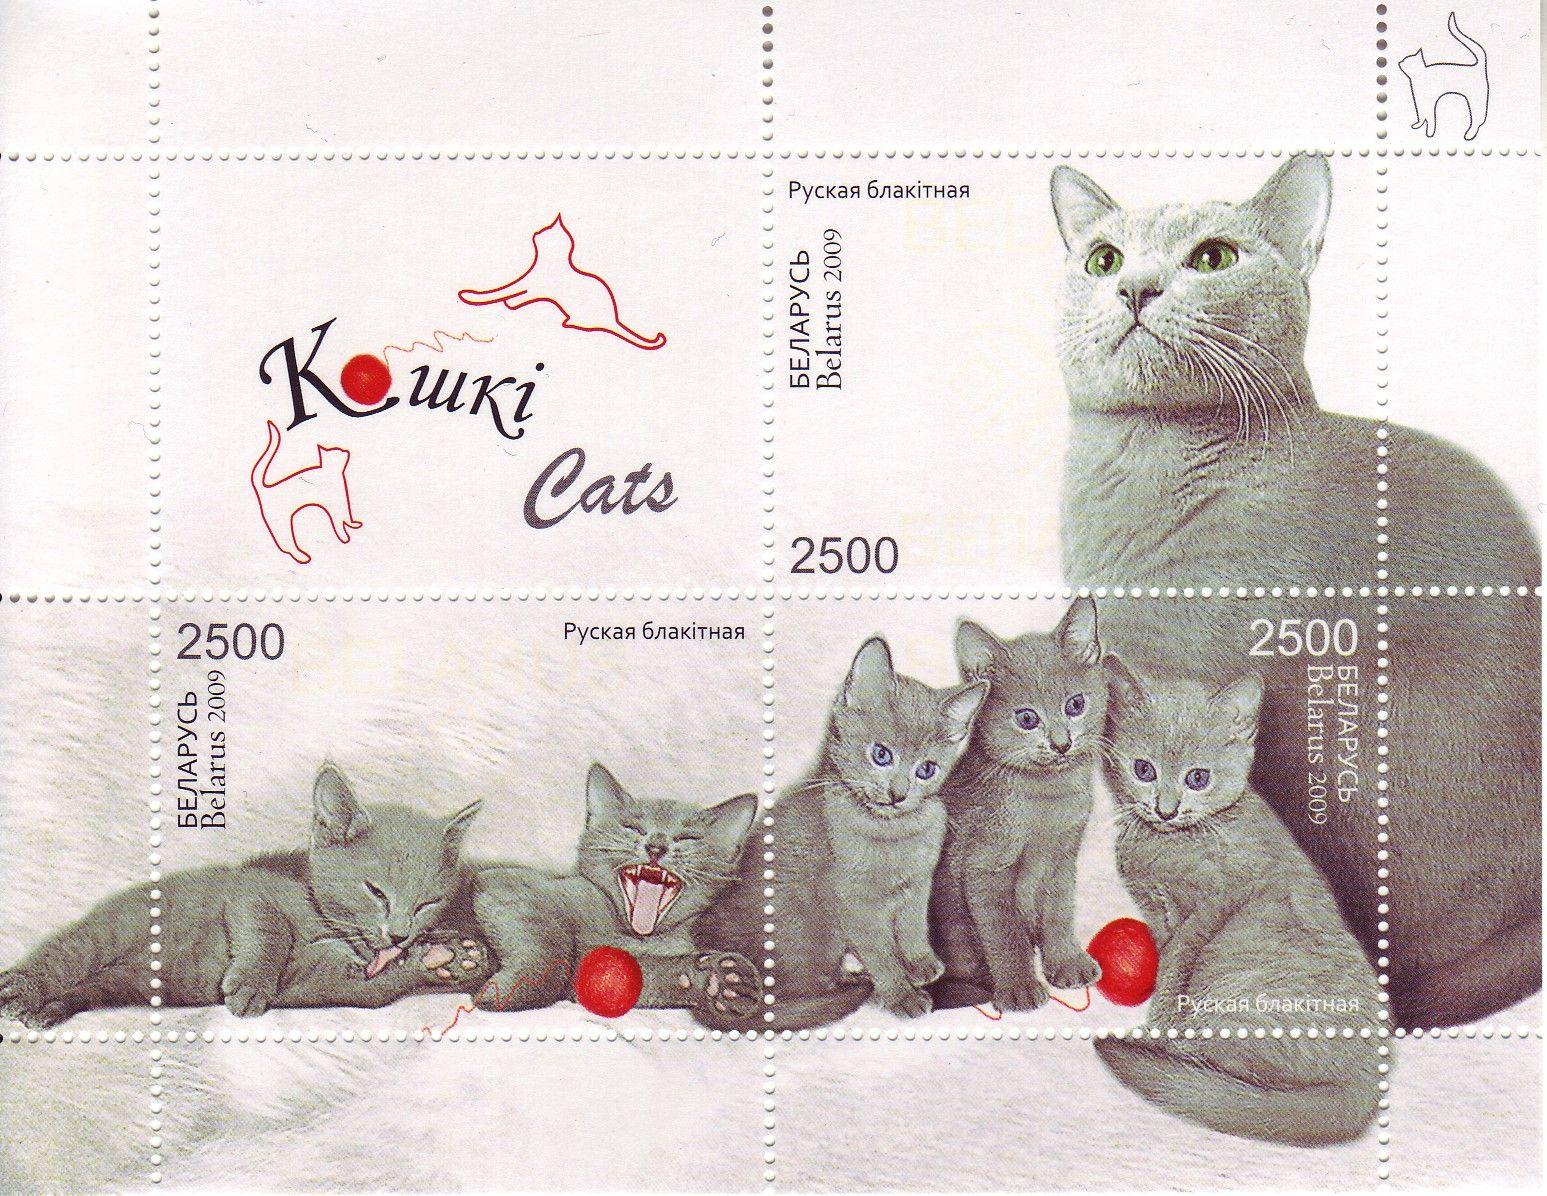 Kowki Cats Russian Blues postage stamps, Belarus